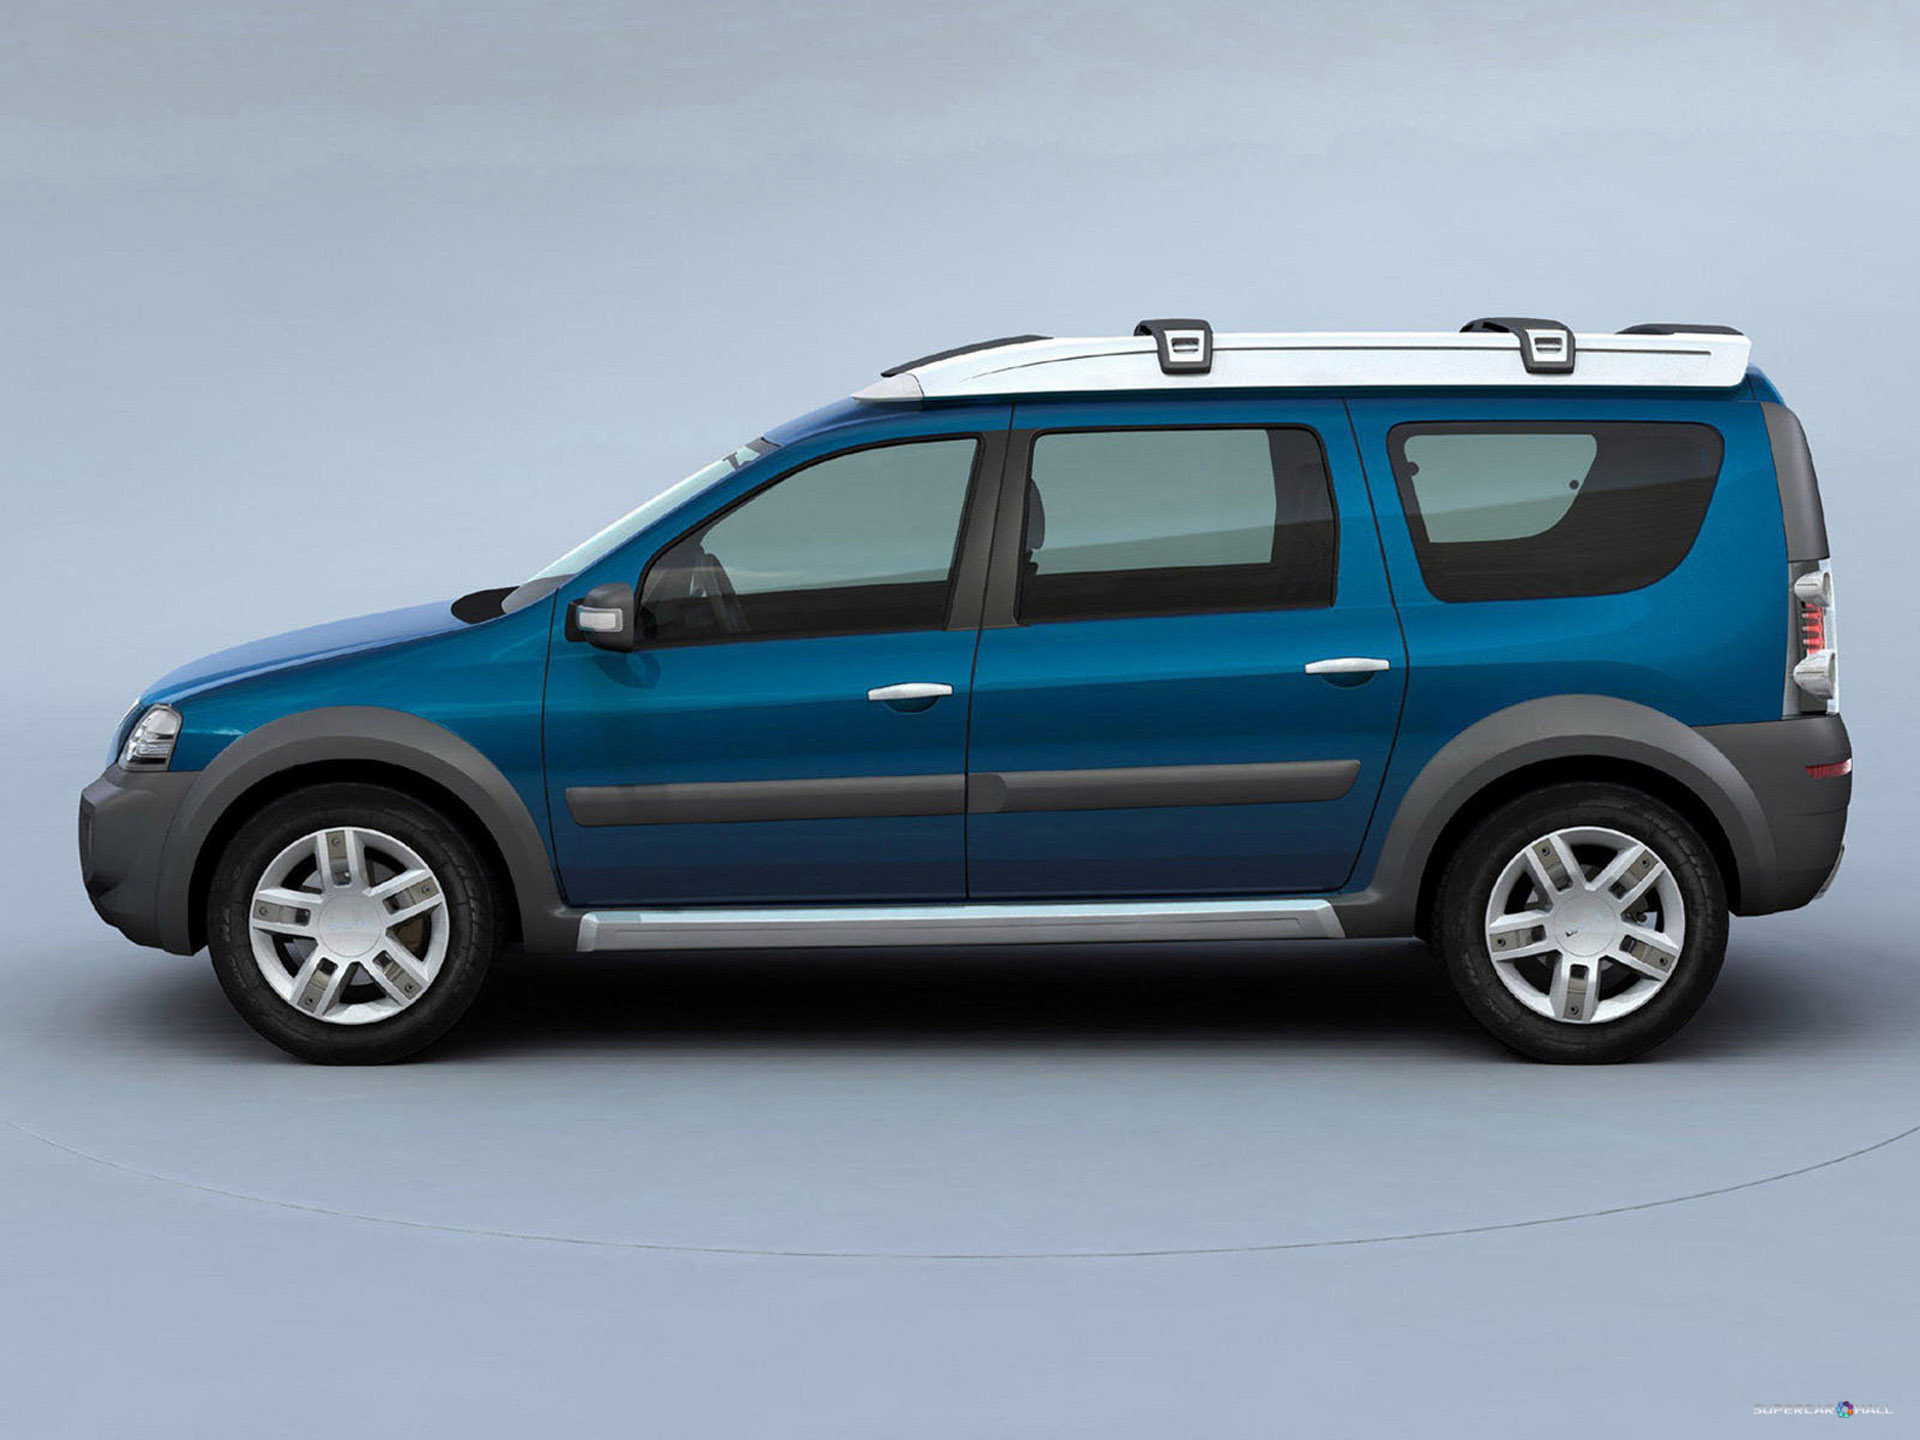 2019 Dacia Logan Steppe Concept photo - 6